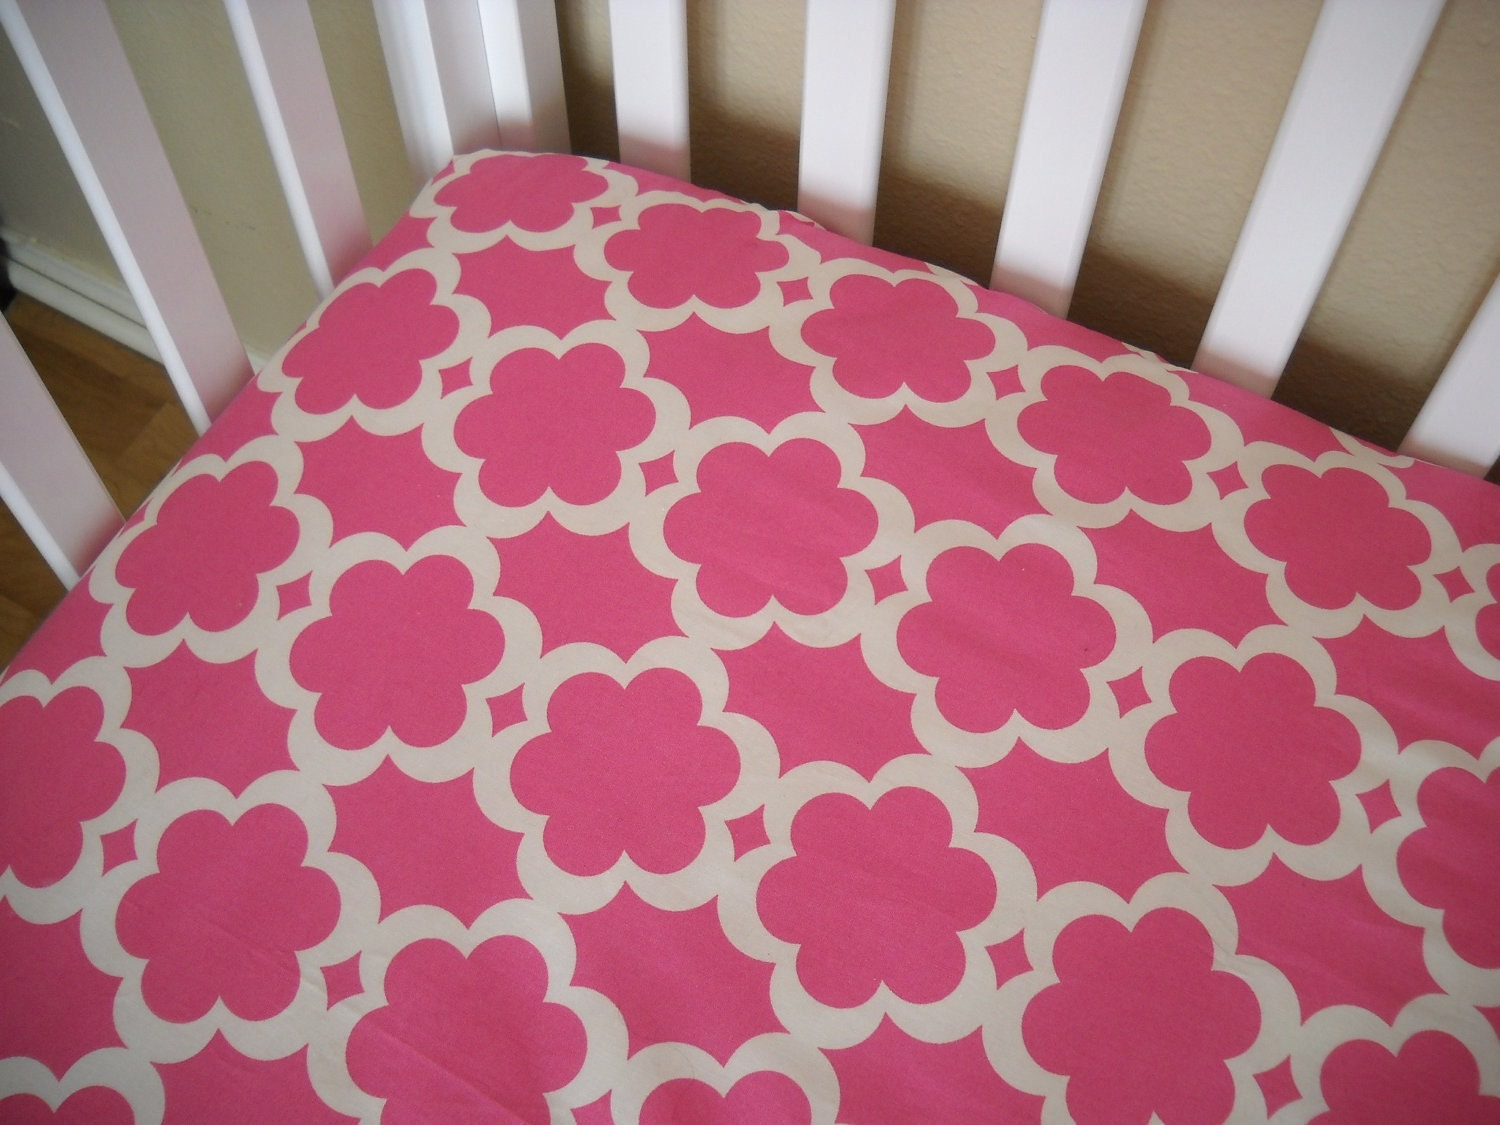 Custom Baby Crib Sheet - Taza Orange Pink Red - Toddler Bed Sheet - Design Your Own - You Choose the Fabric